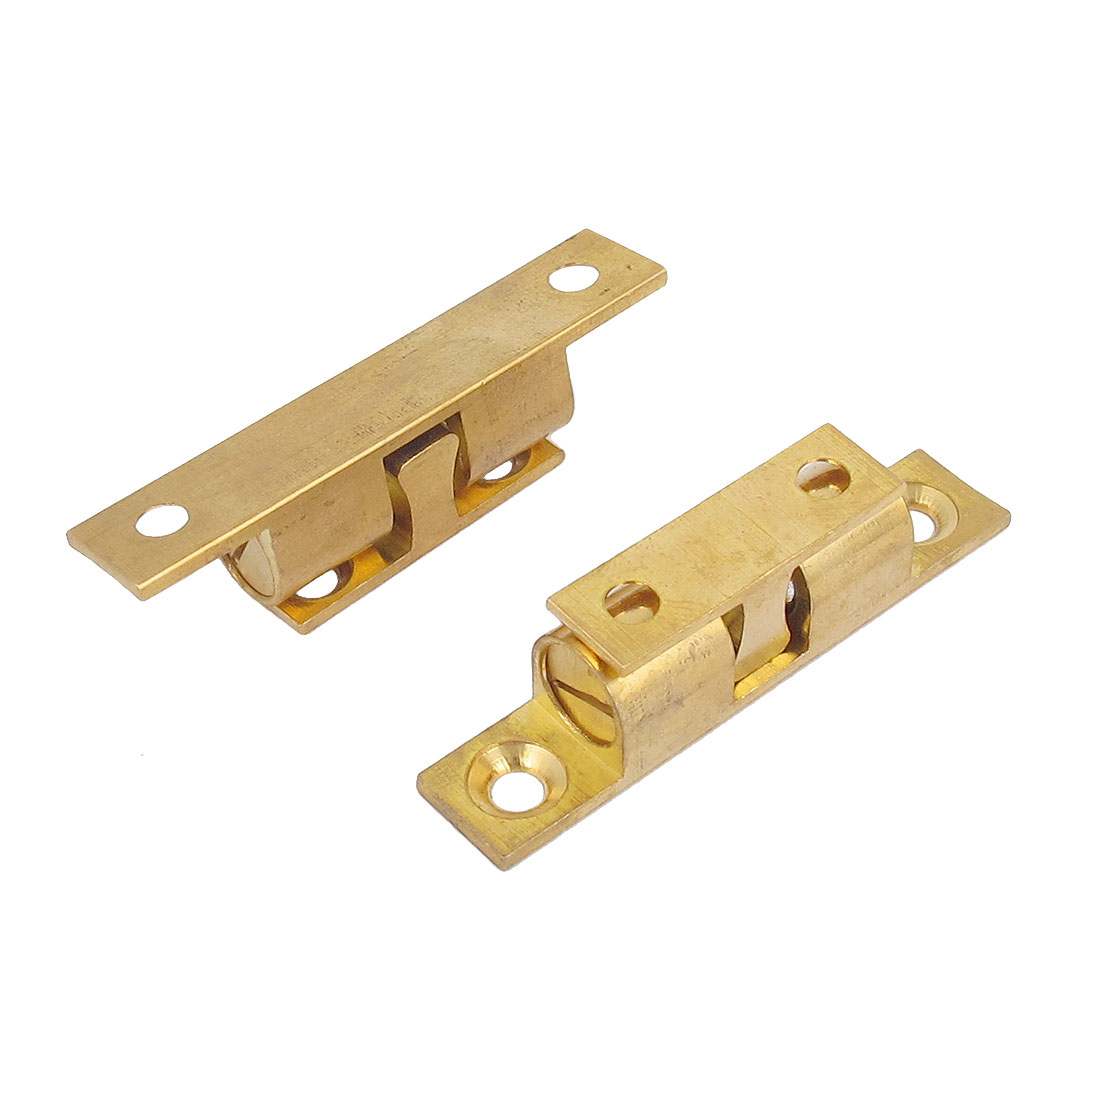 2pcs Cupboard Cabinet Door Double Ball Catch Brass Roller Latch 50mm Long Base